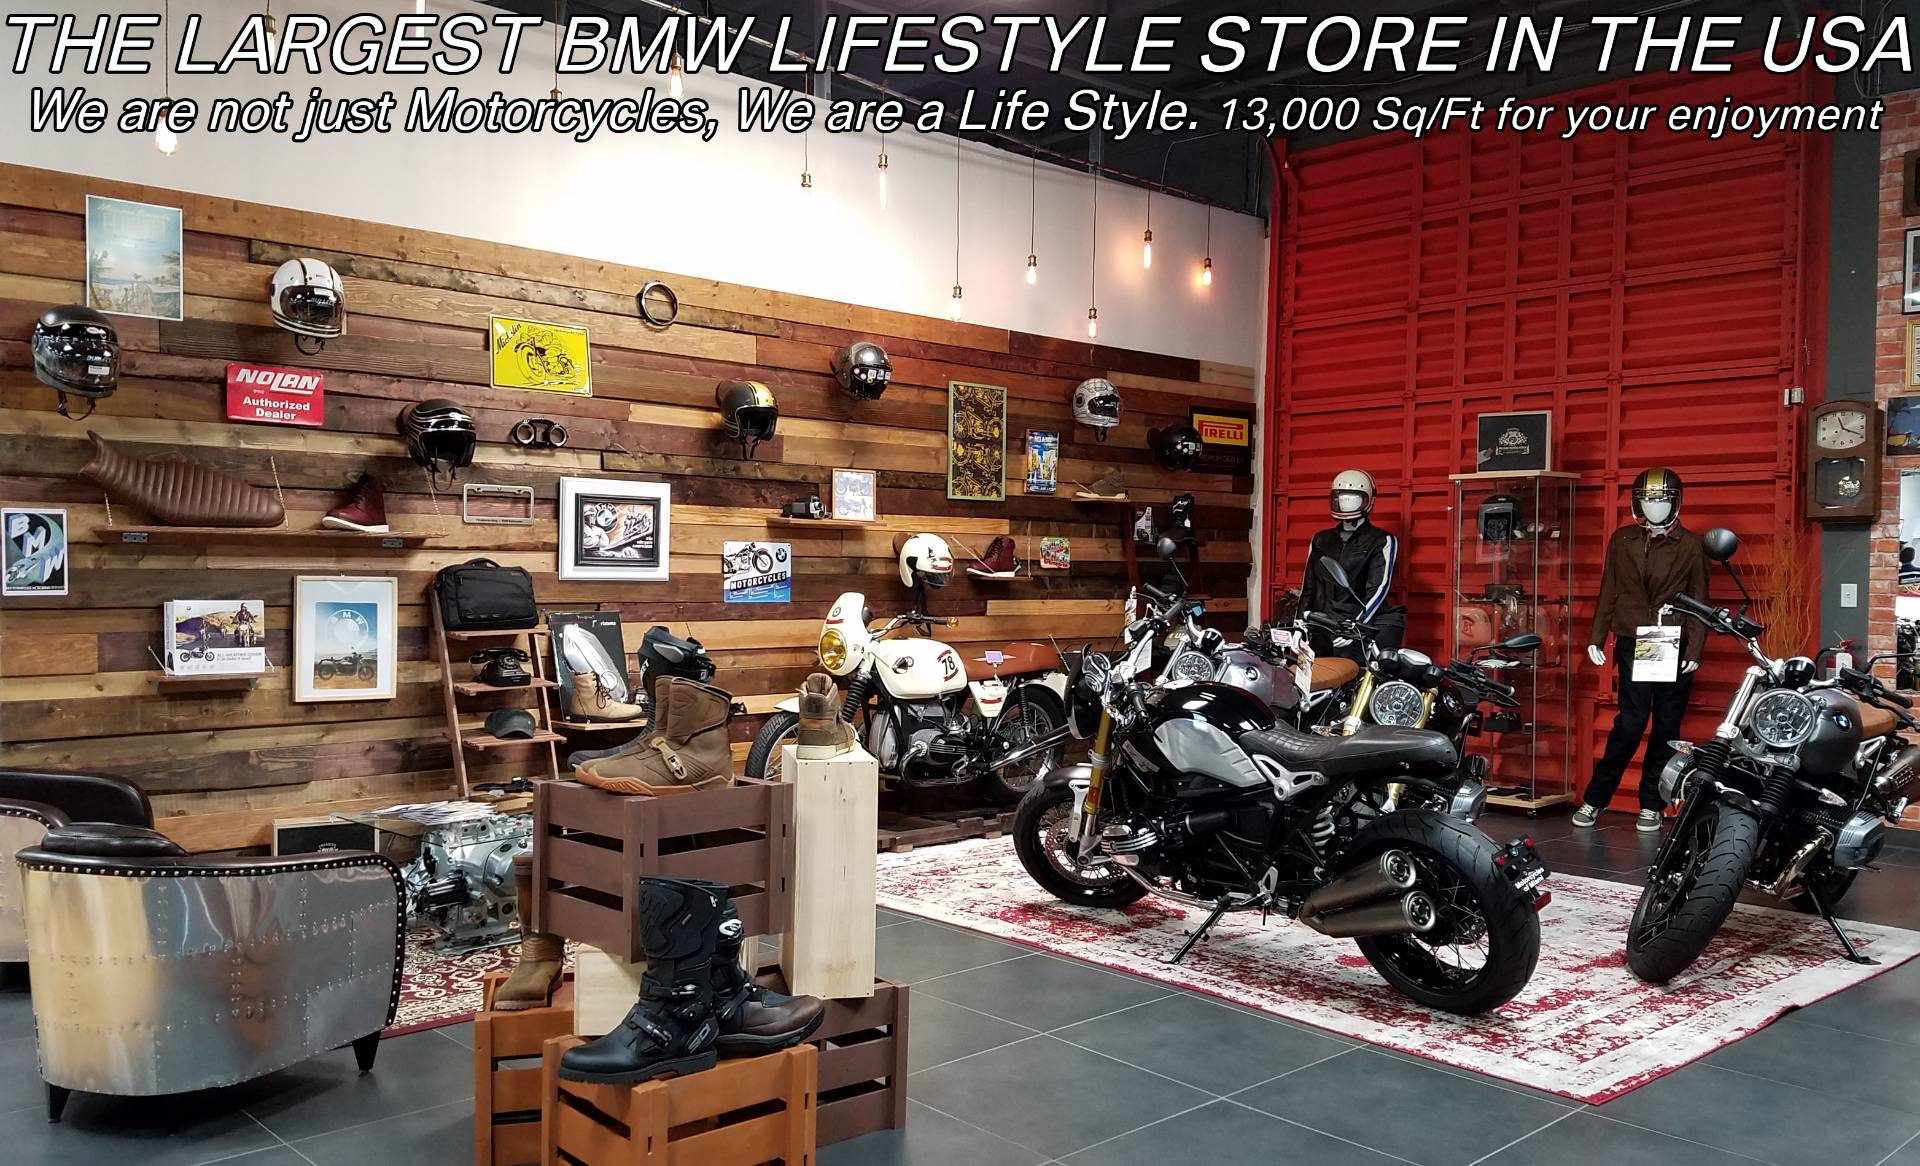 New 2019 BMW R NineT Scrambler for sale, BMW for sale, BMW Motorcycle Café Racer, new BMW Scrambler, Srambler, BMW. BMW Motorcycles of Miami, Motorcycles of Miami - Photo 42